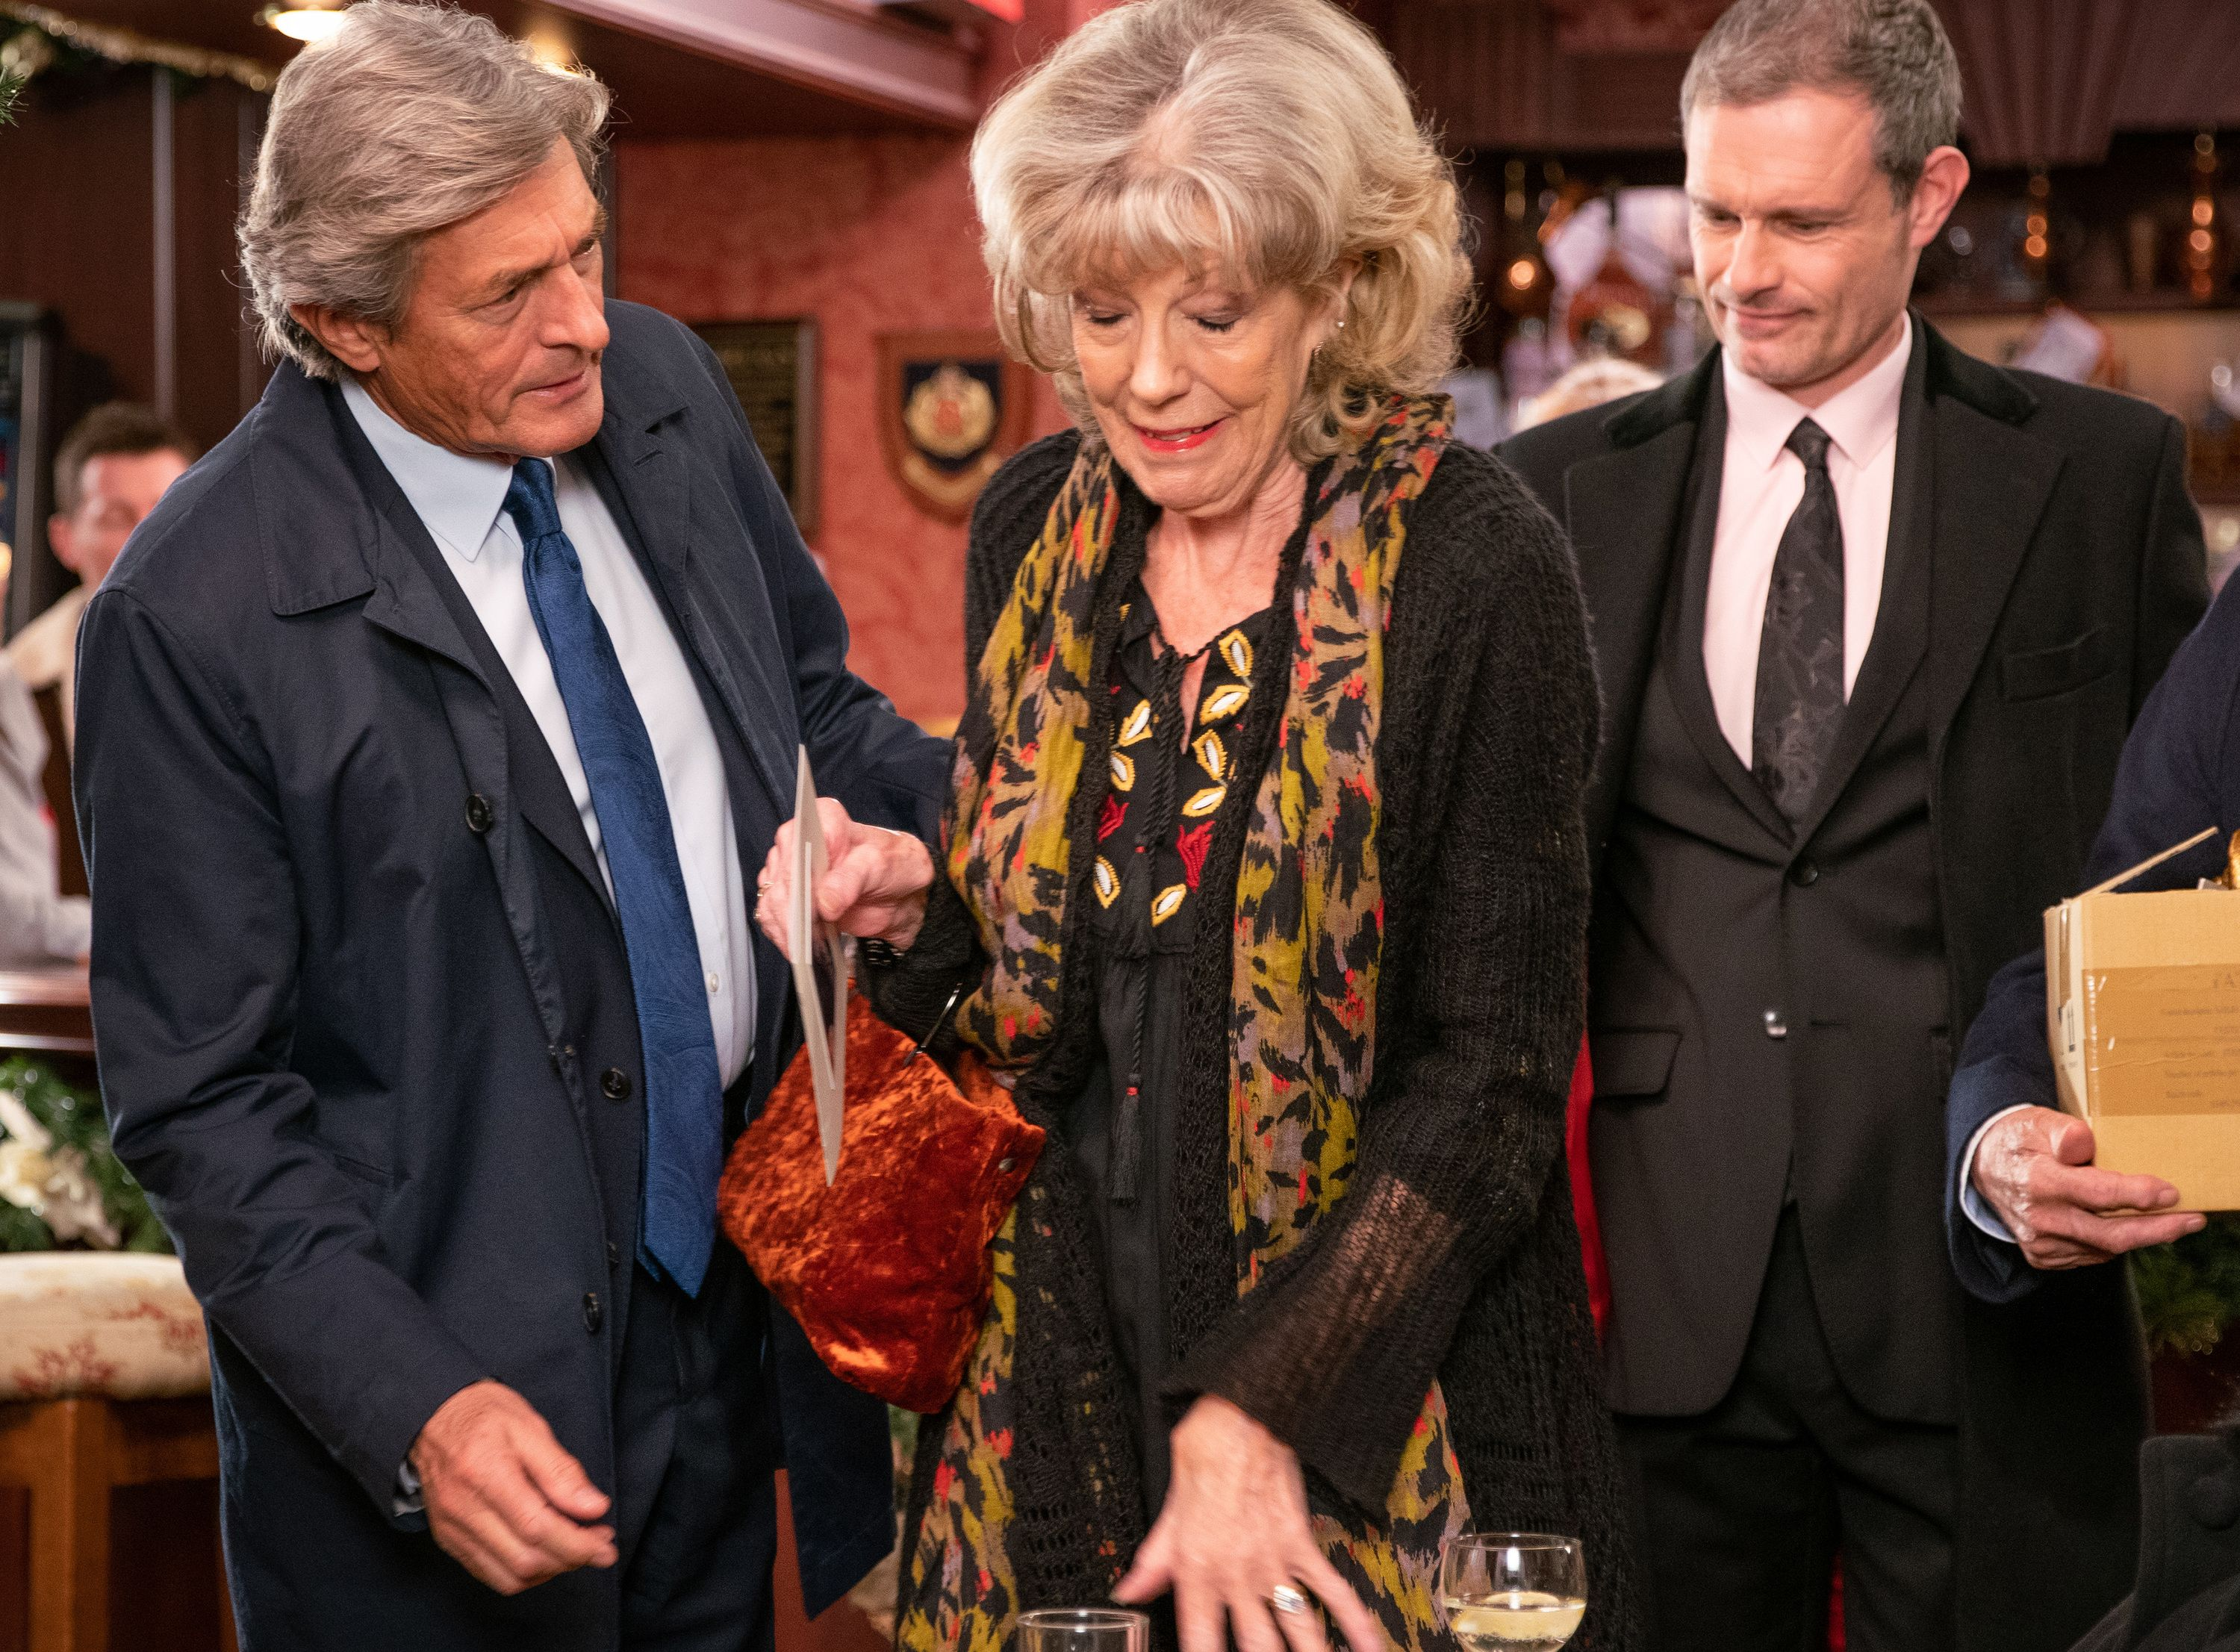 Audrey Roberts returns from Archie Shuttleworth's funeral in Coronation Street